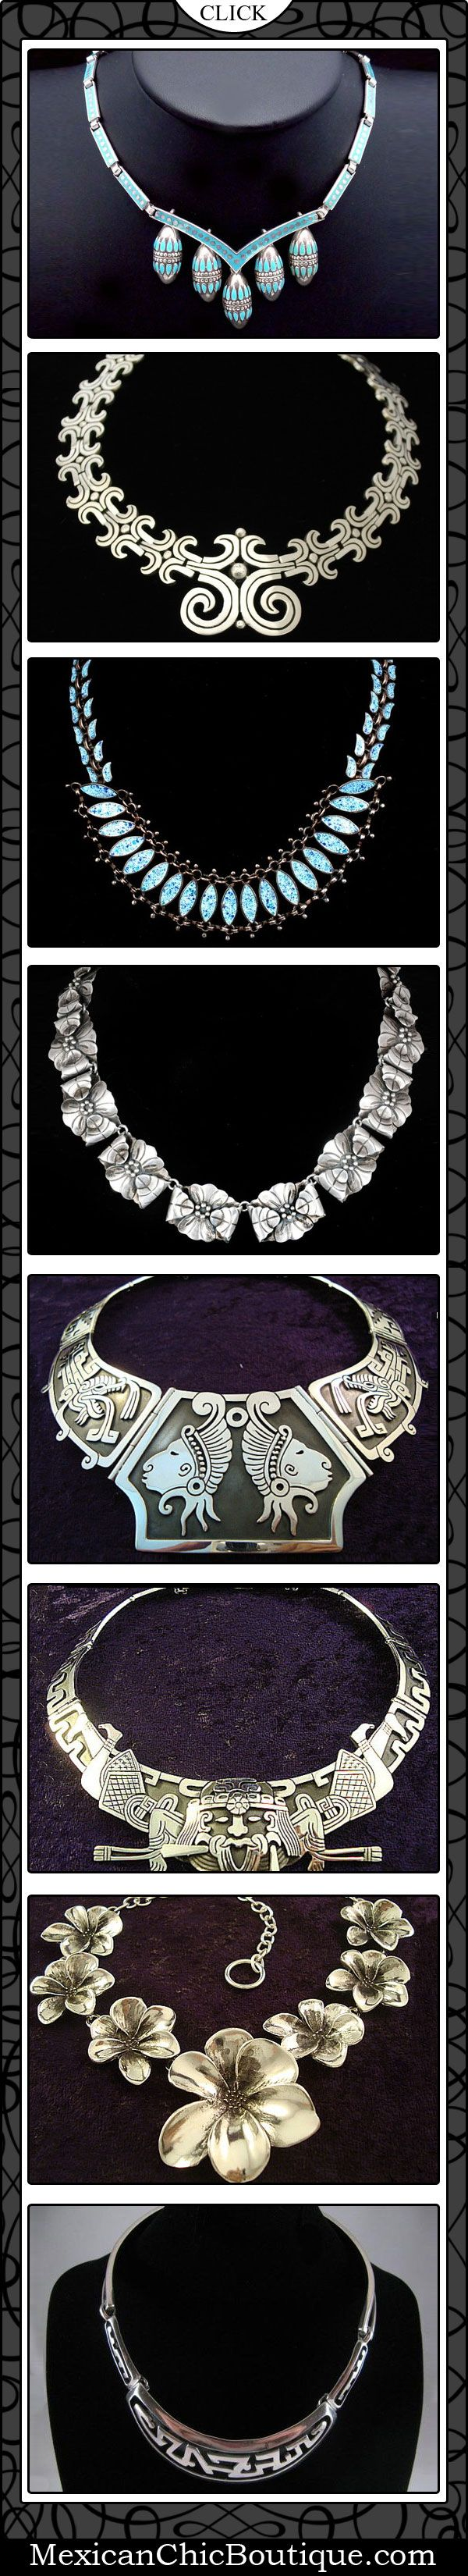 Taxco Jewelry ♥ Bold Necklace ♥   Mexican Sterling Silver ♥ Taxco Vintage Sterling Silver (http://www.mexicanchicboutique.com/)